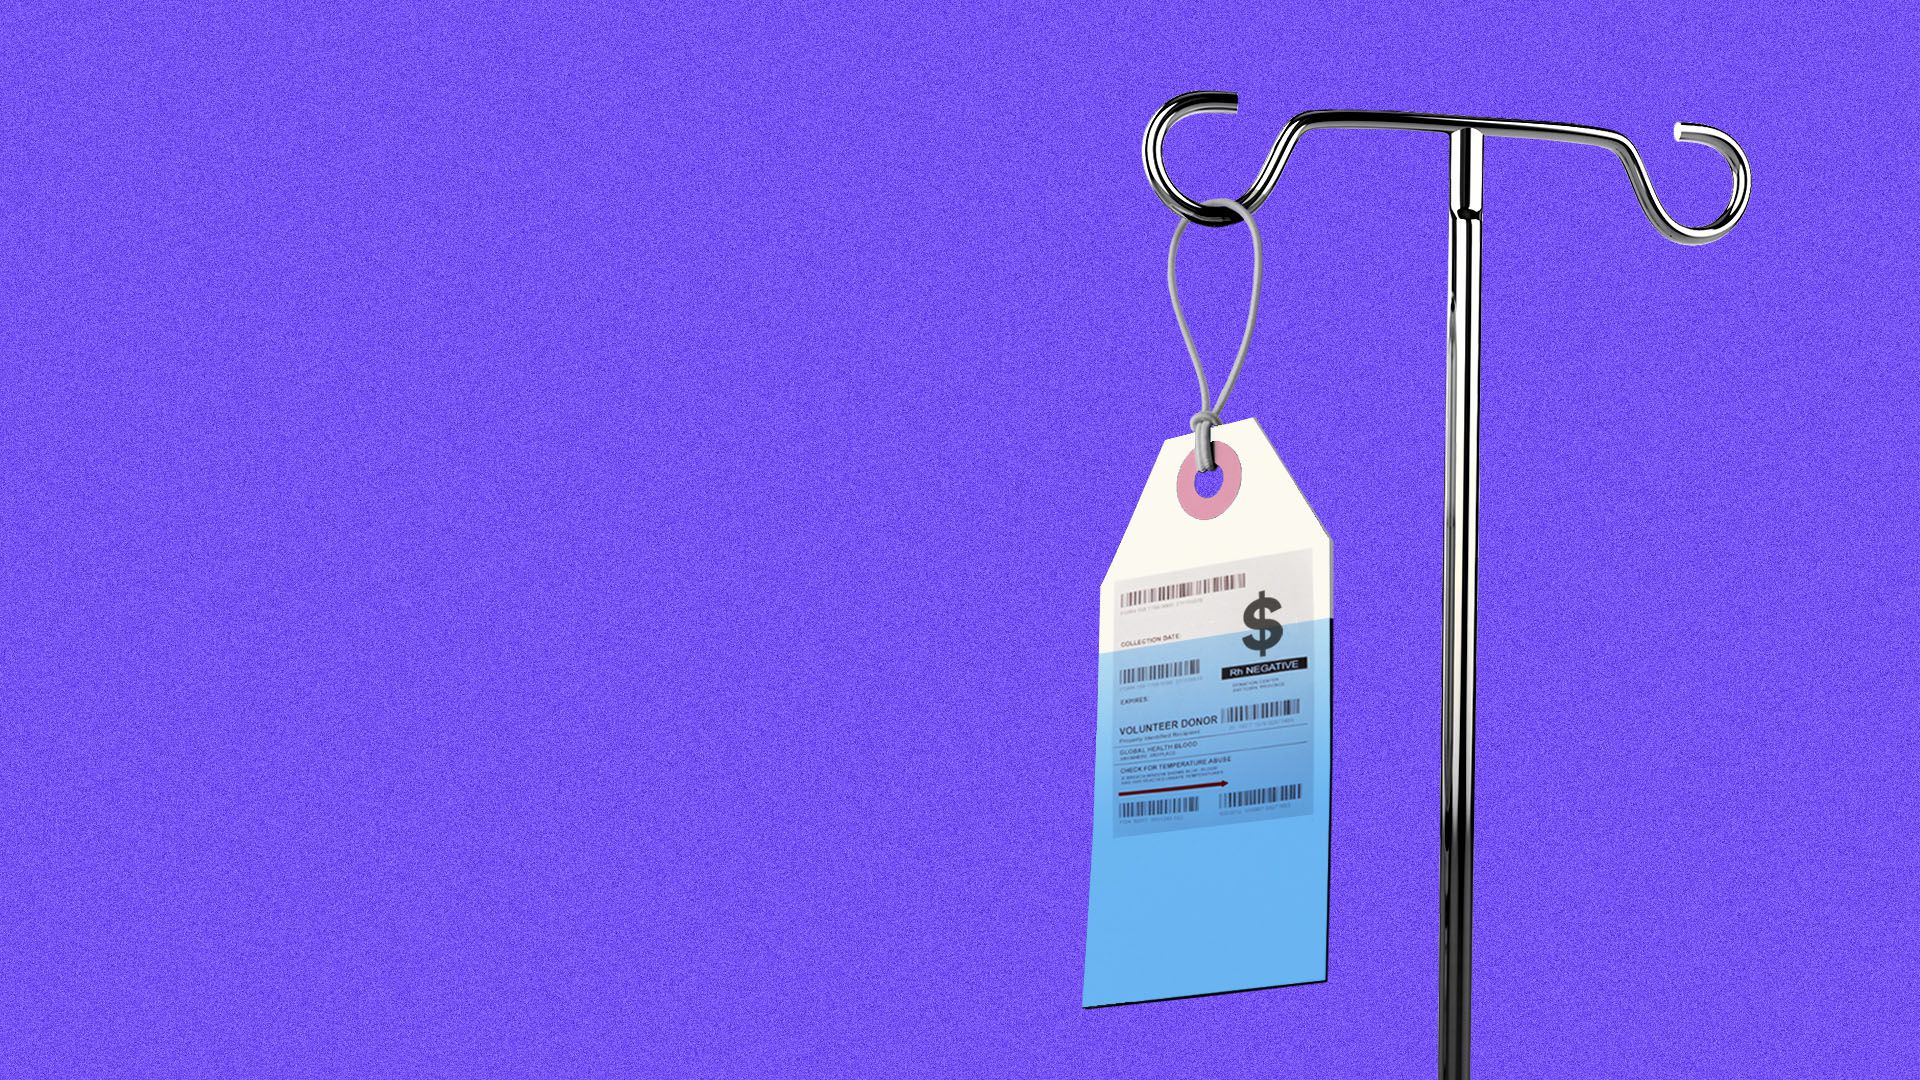 Illustration of a price tag hanging from an IV stand